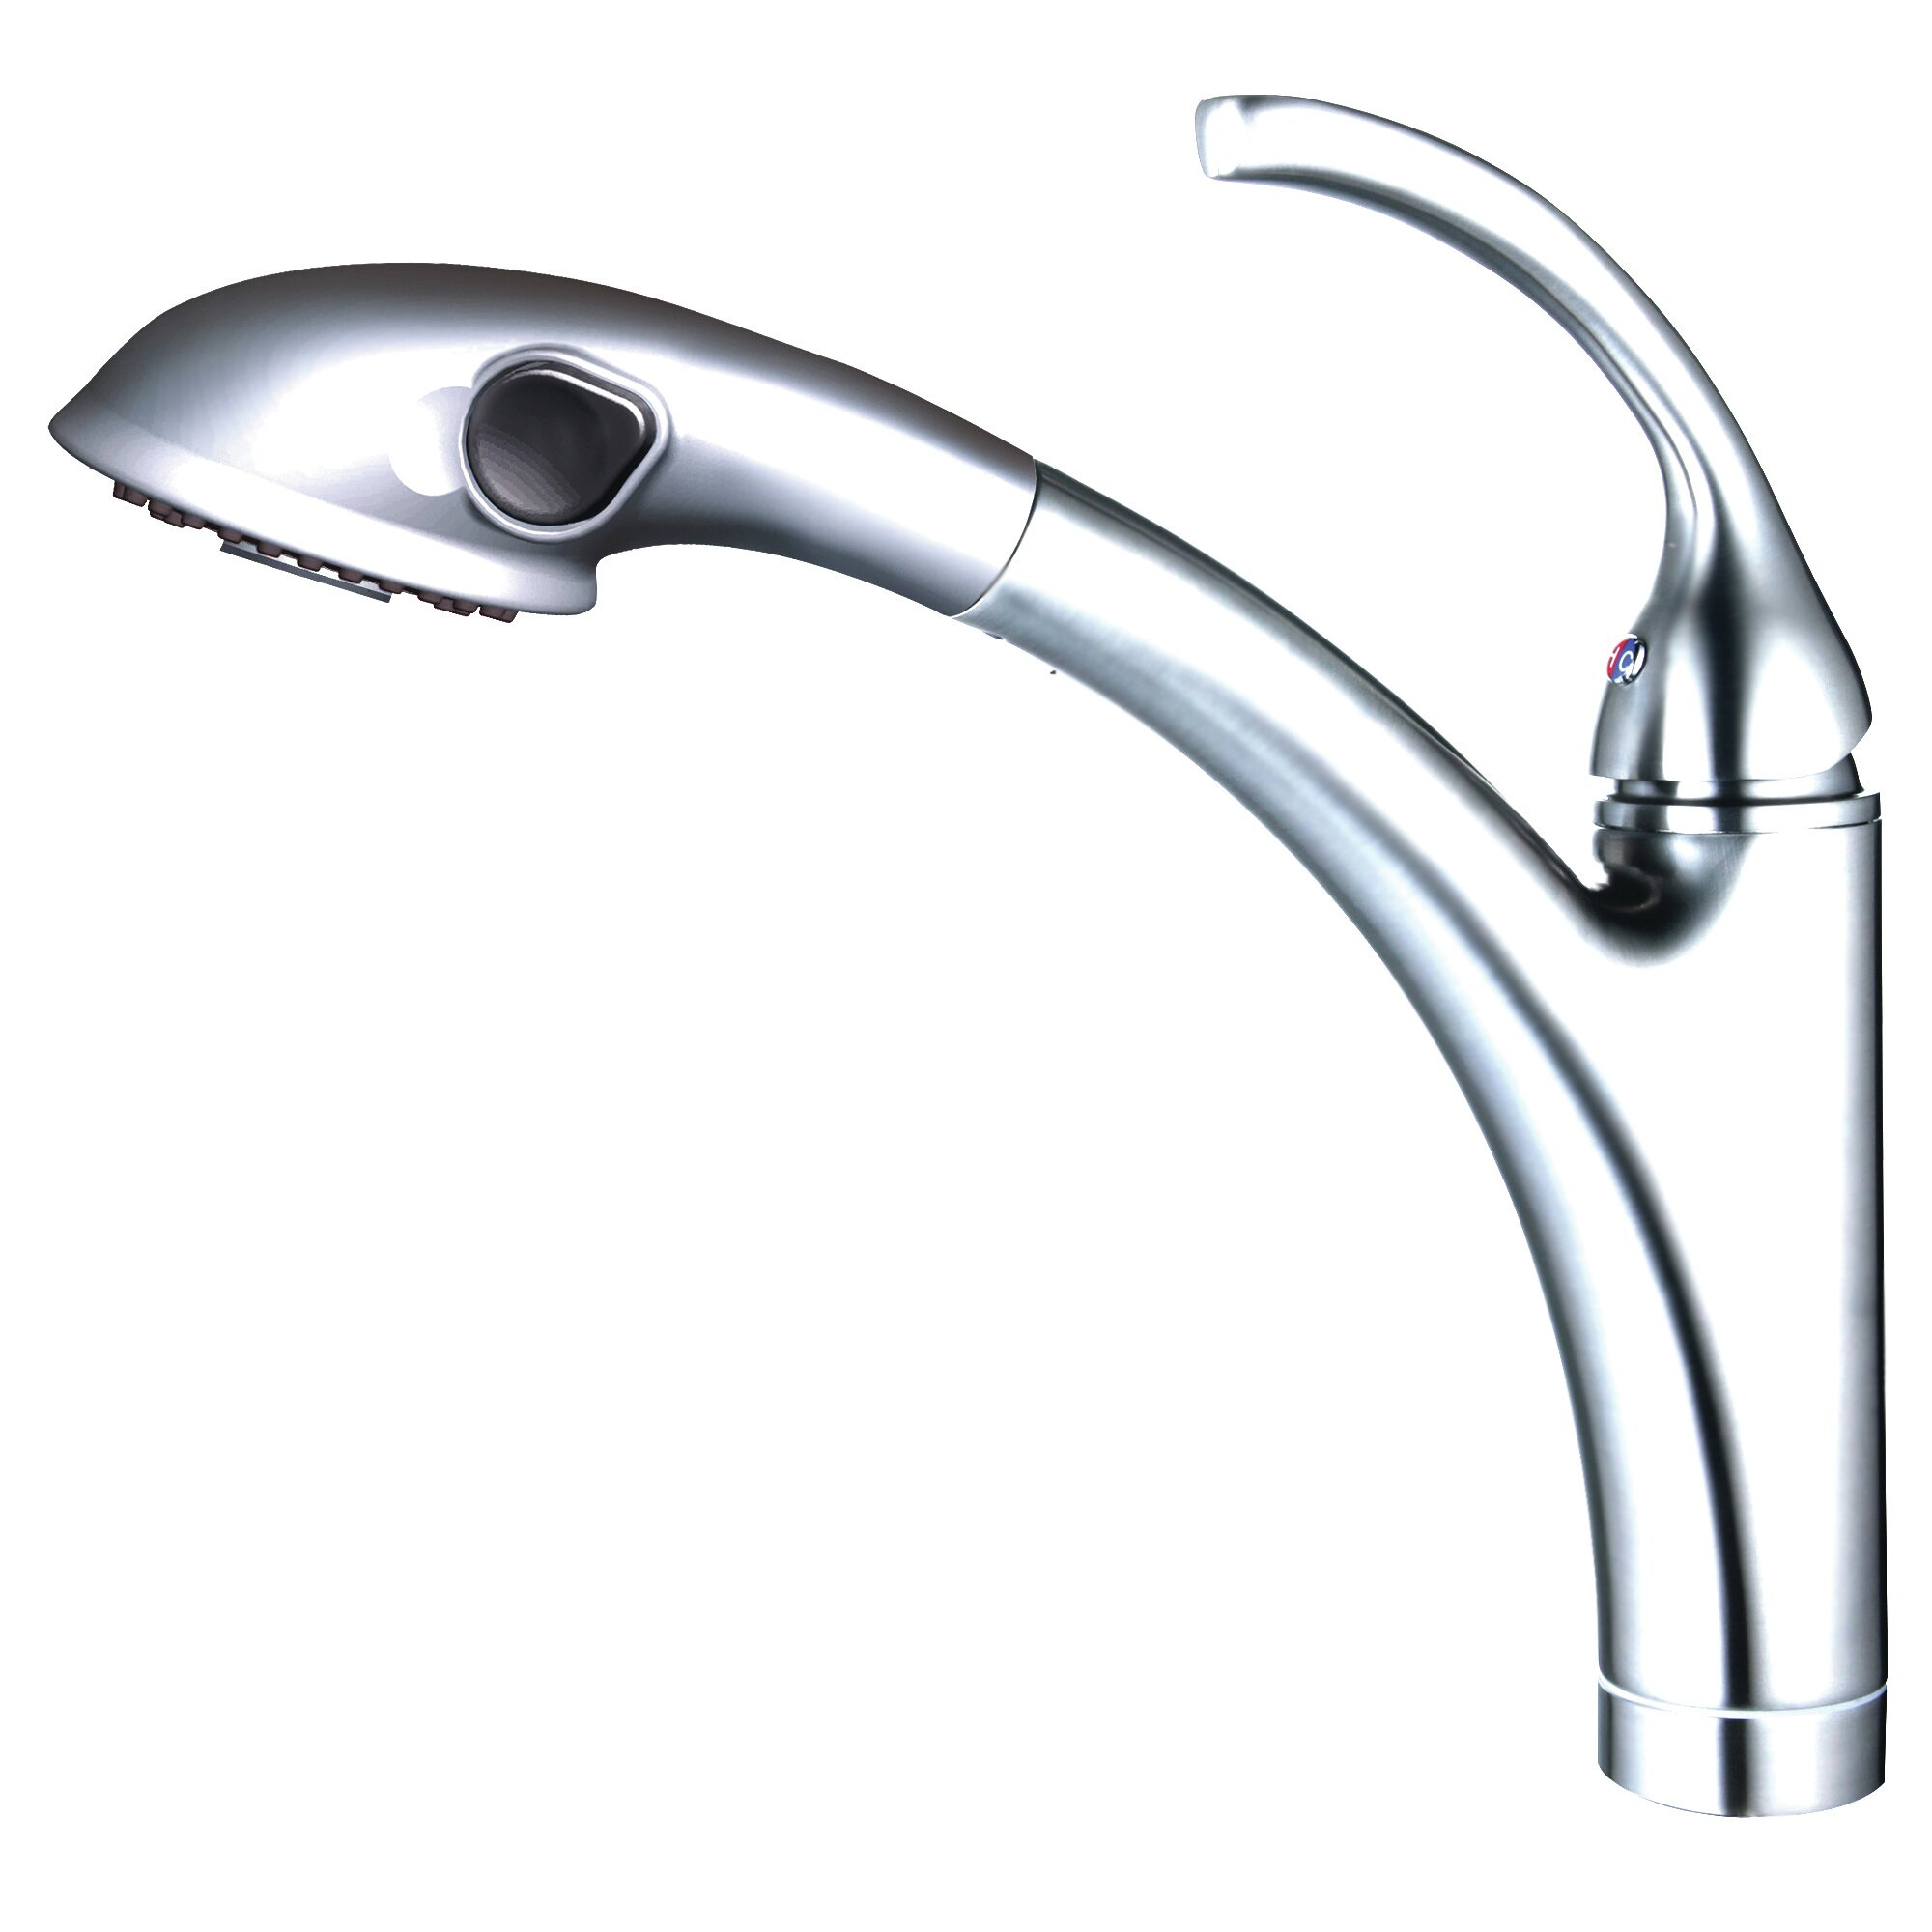 Yosemite home decor single handle single hole kitchen faucet with pull out spout sprayer Design house kitchen faucets reviews